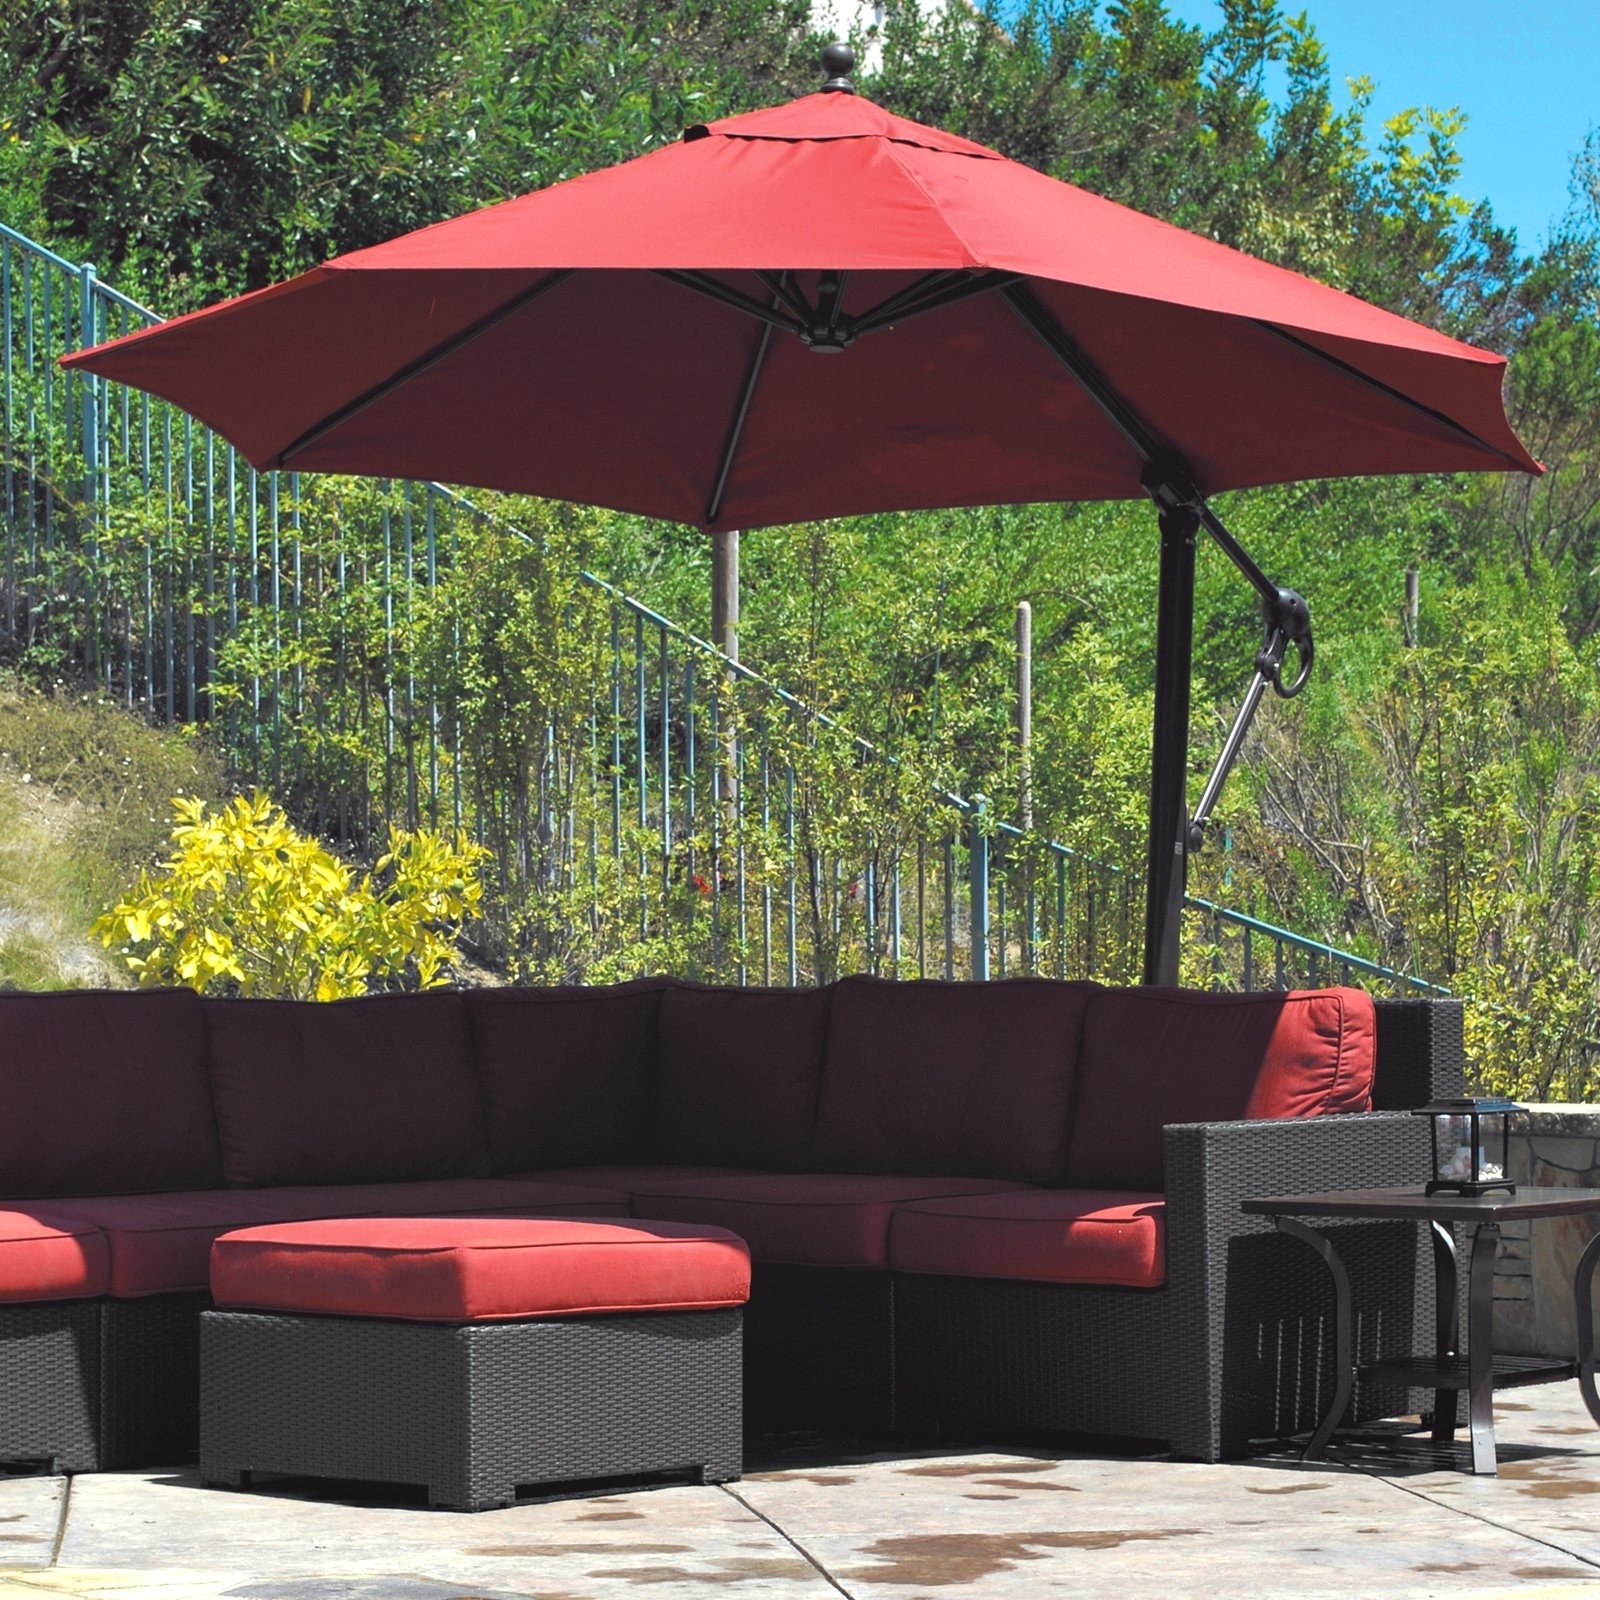 Red Patio Umbrellas Throughout Recent Offset Patio Umbrella For Shade From Sun – Decorifusta (View 12 of 20)